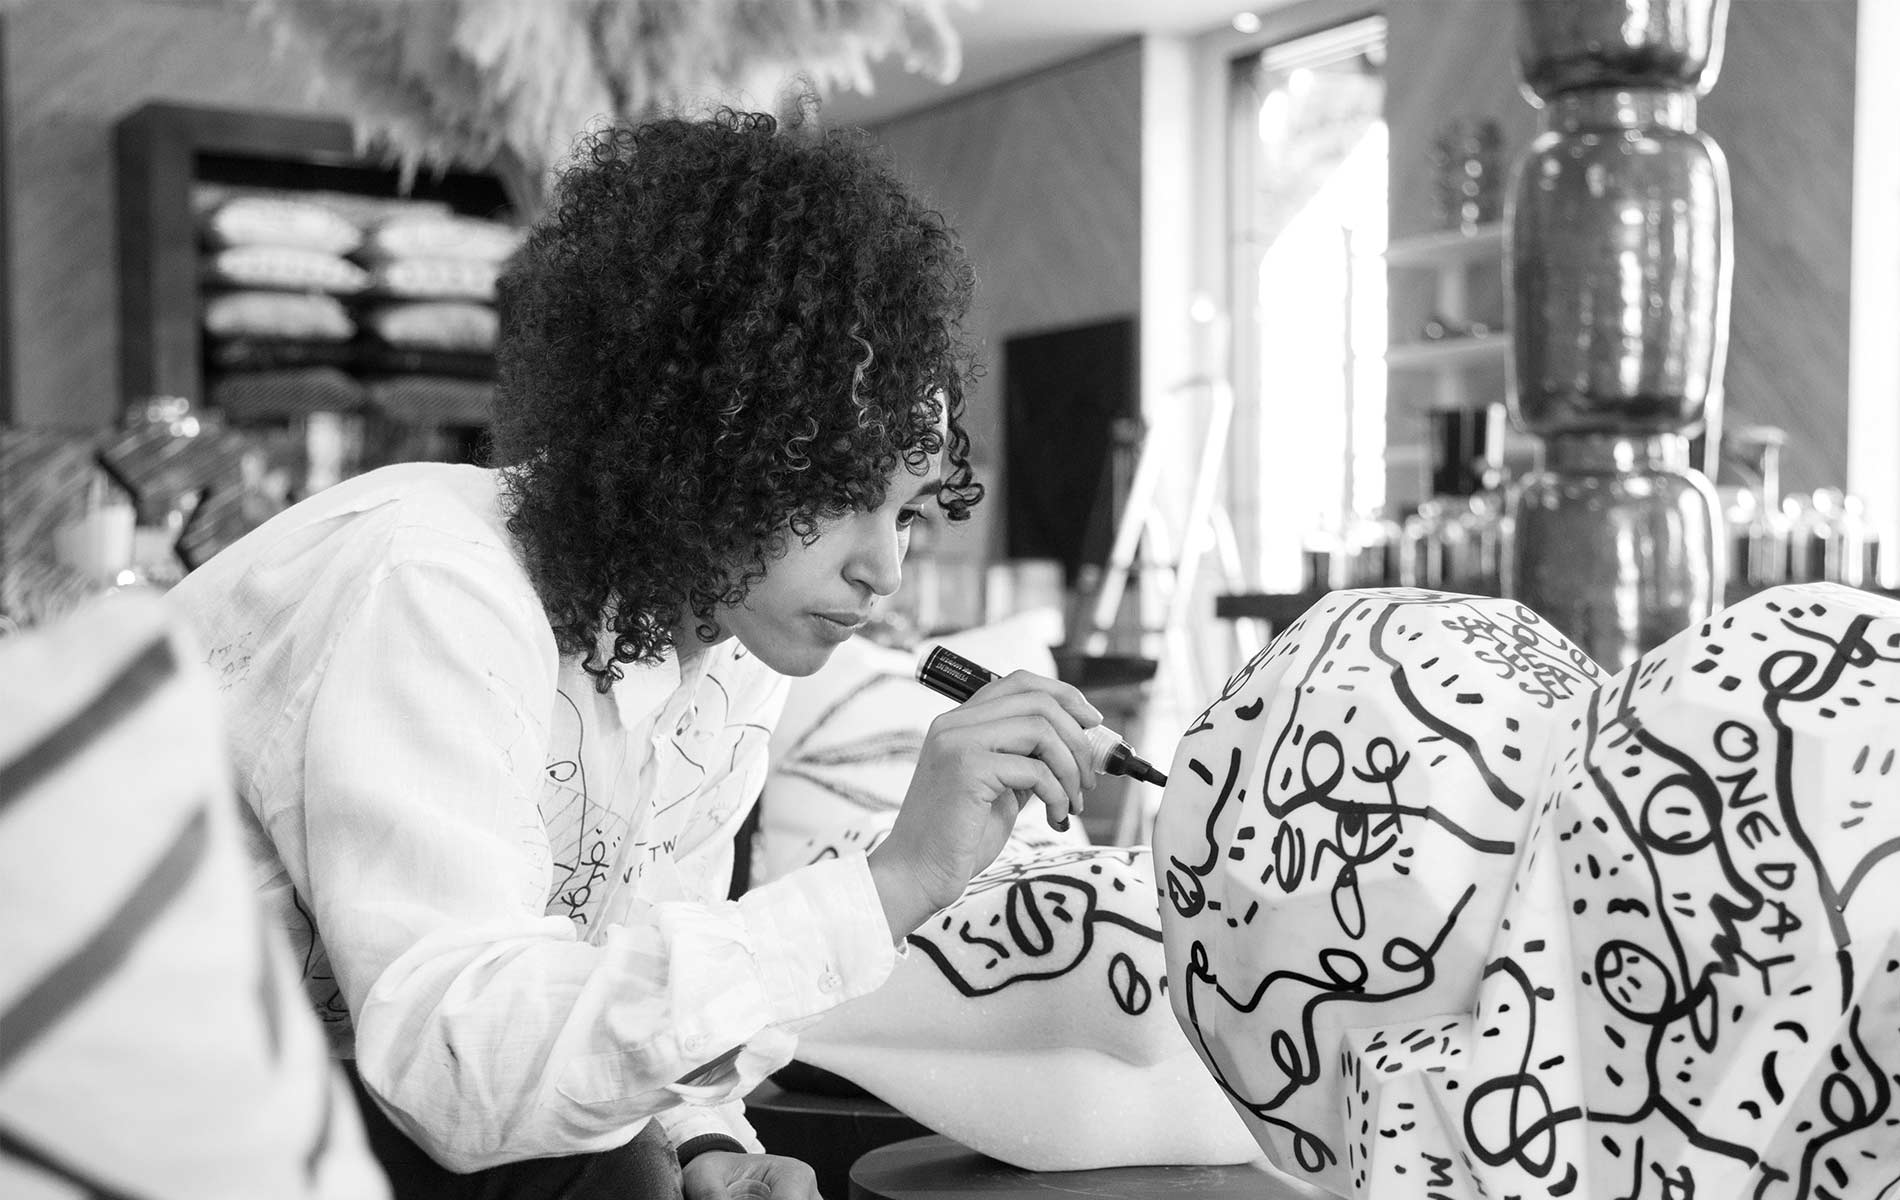 Shantell Martin works on project in Los Angeles